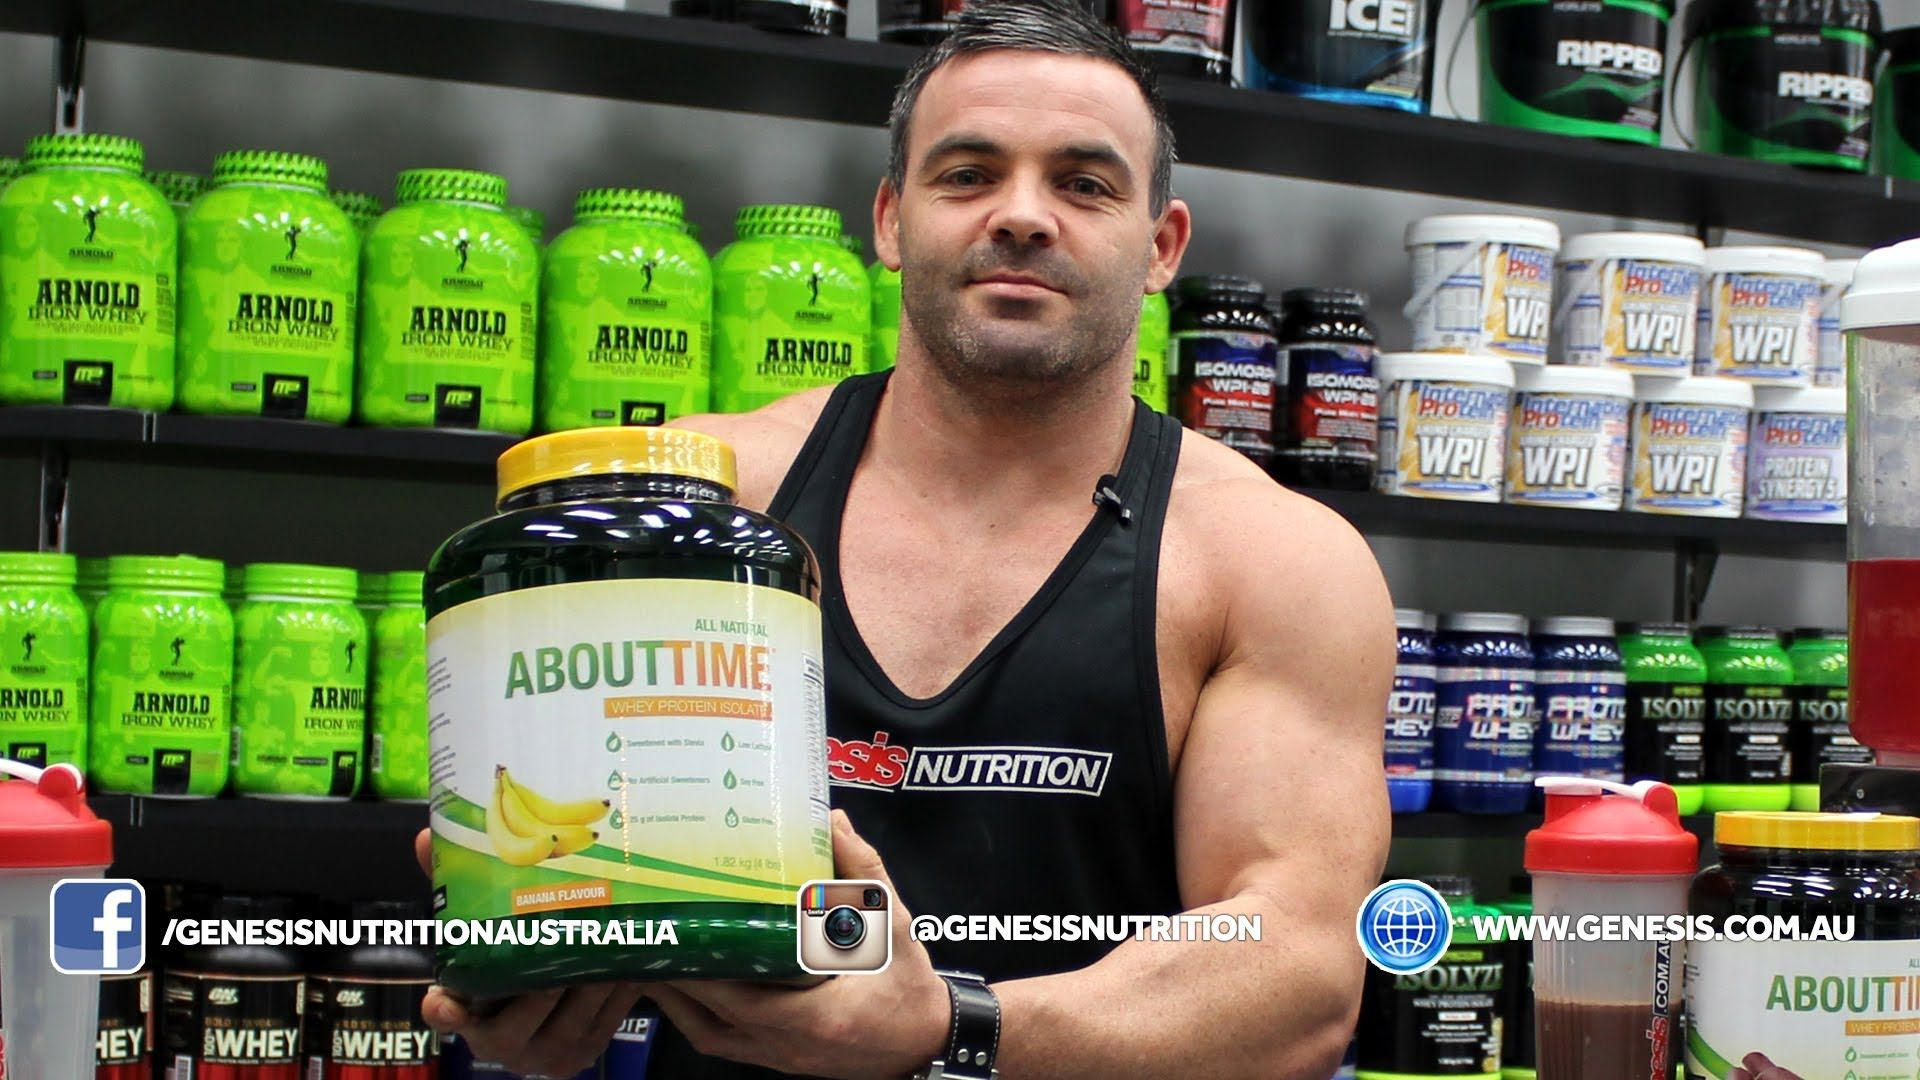 About Time WPI Review Genesis.com.au - Natural Whey Protein Isolate. Shop online 24/7 with the Lowest Prices! Australian owned and Operated Shipping Nationwide Daily.